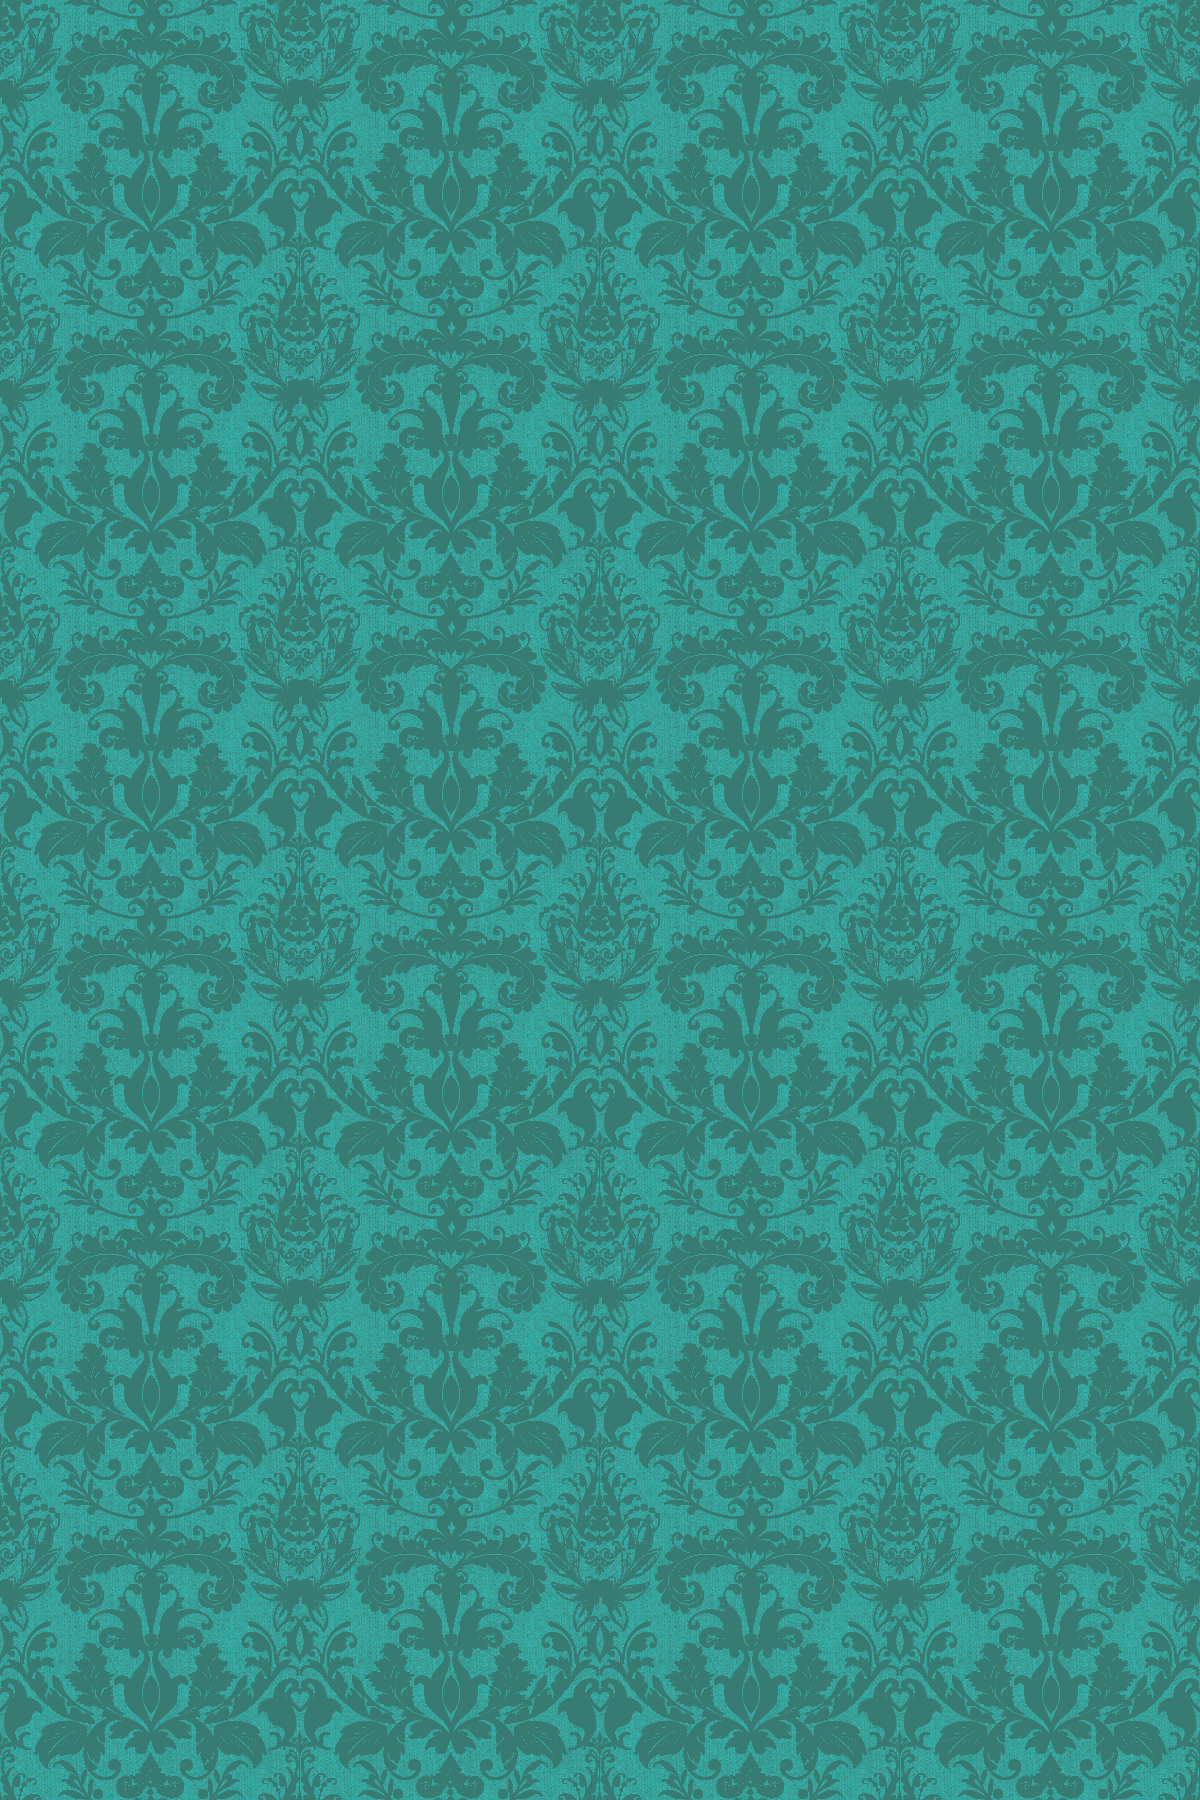 Teal backgrounds tumblr - photo#14